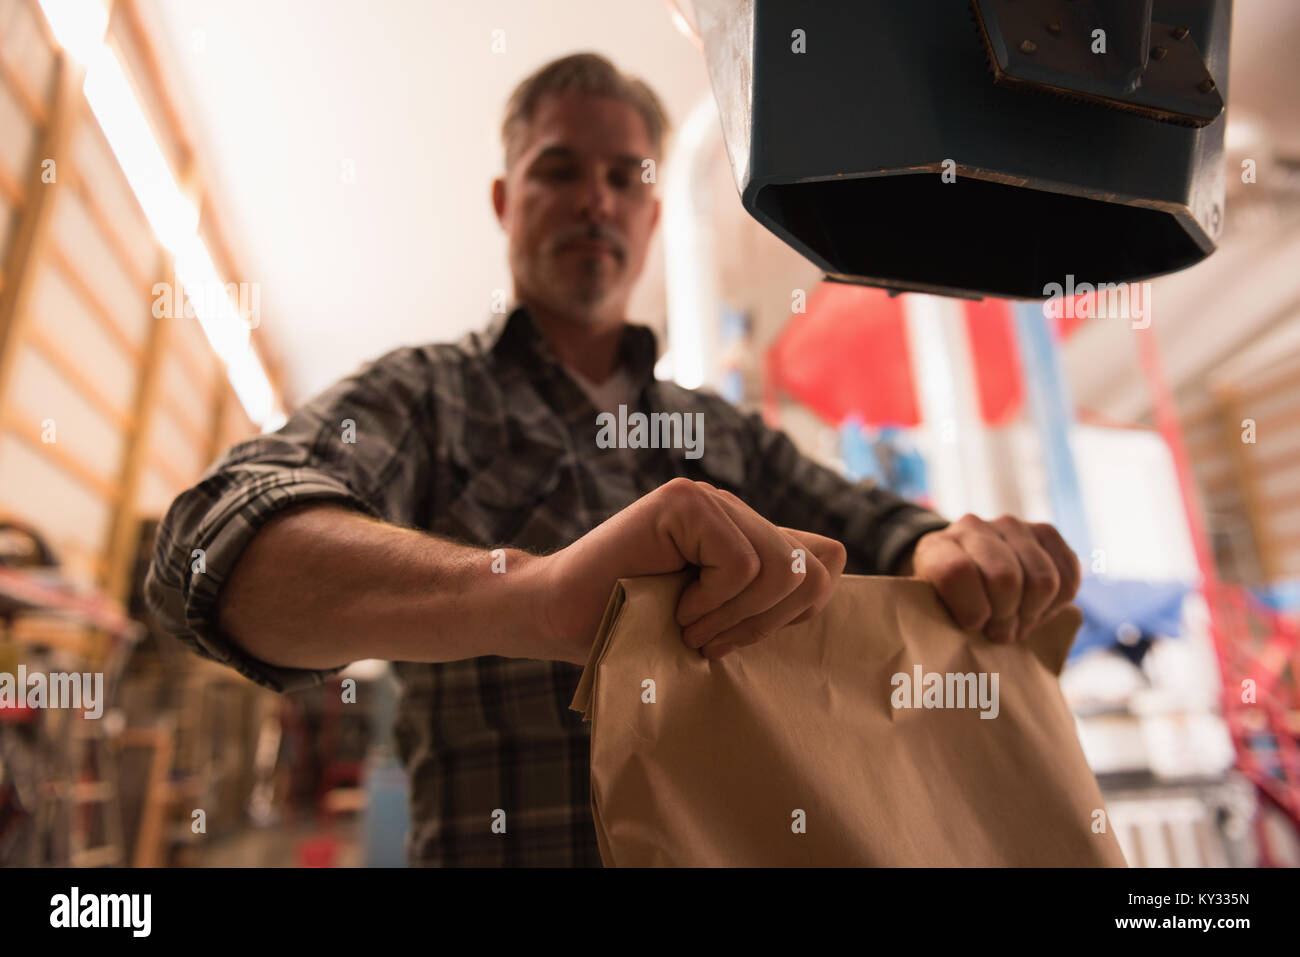 Man packing refined grains - Stock Image